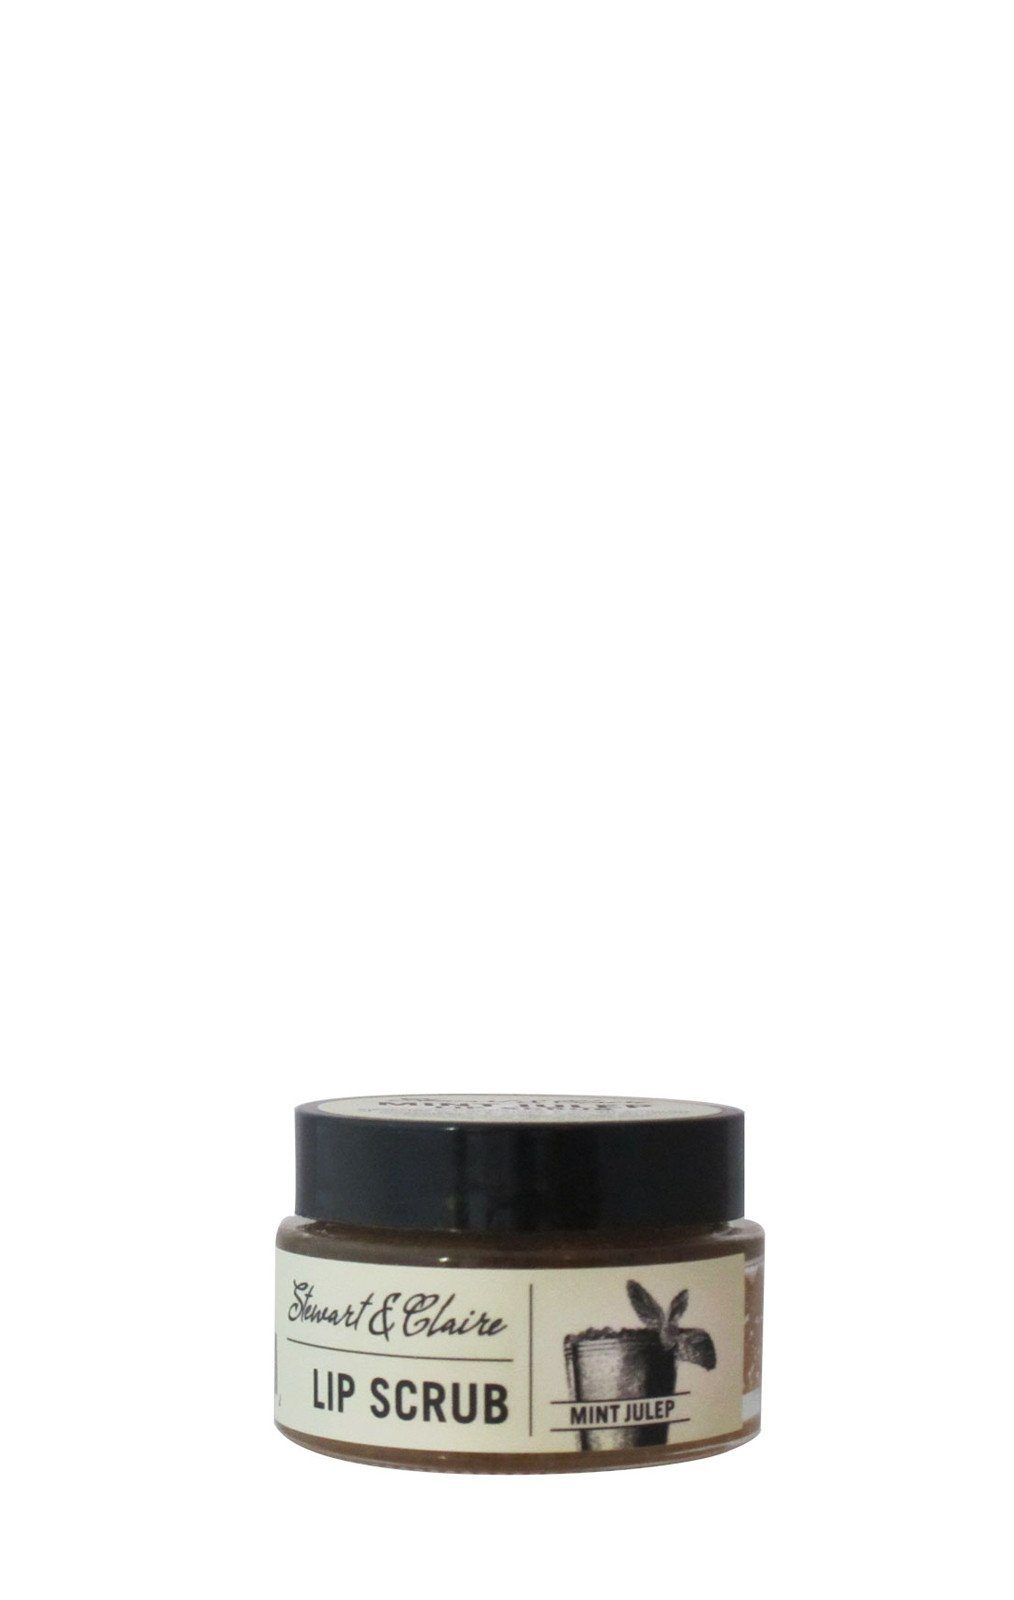 Mint Julep Lip Scrub